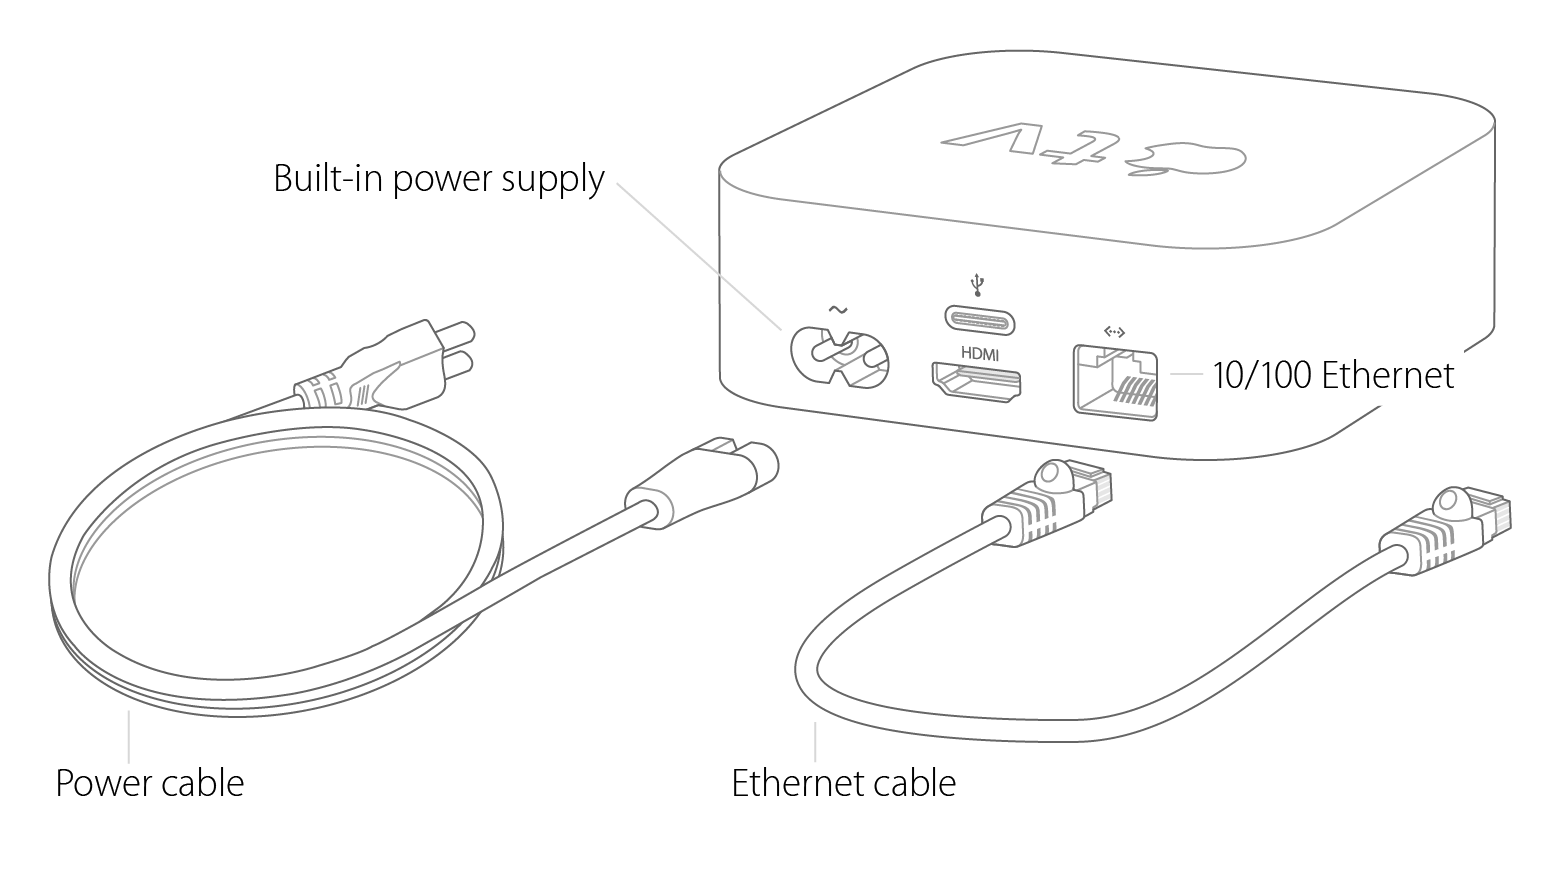 apple tv 4th generation with power cable and ethernet cable [ 1560 x 880 Pixel ]